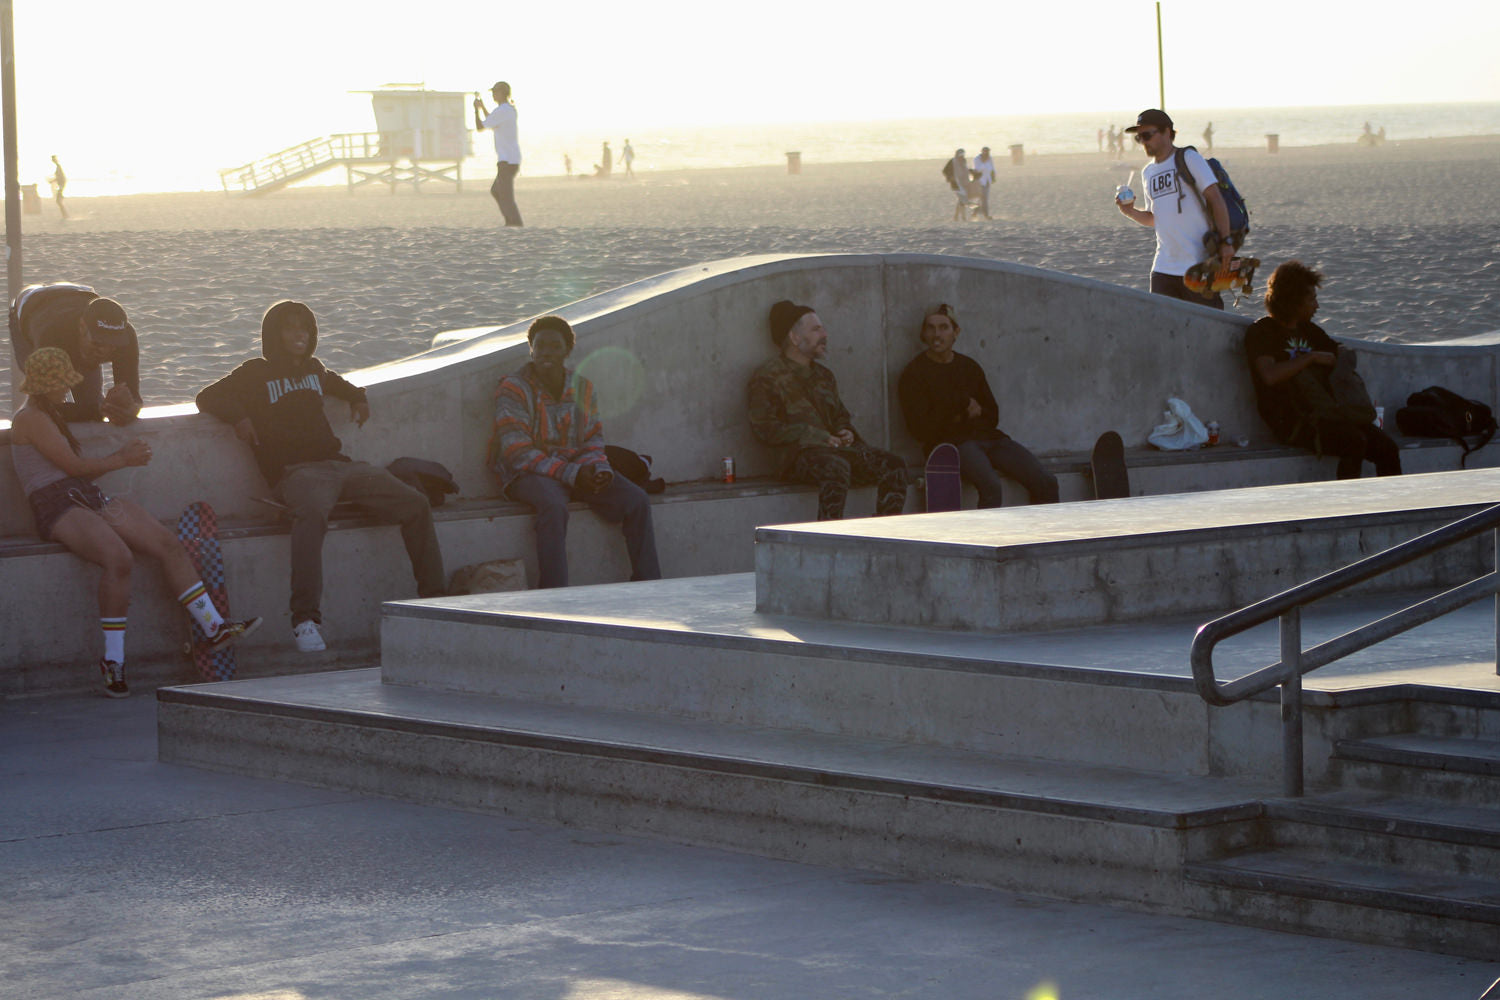 what-its-like-to-skate-venice-beach-skateboarding-longboarding-photo-4